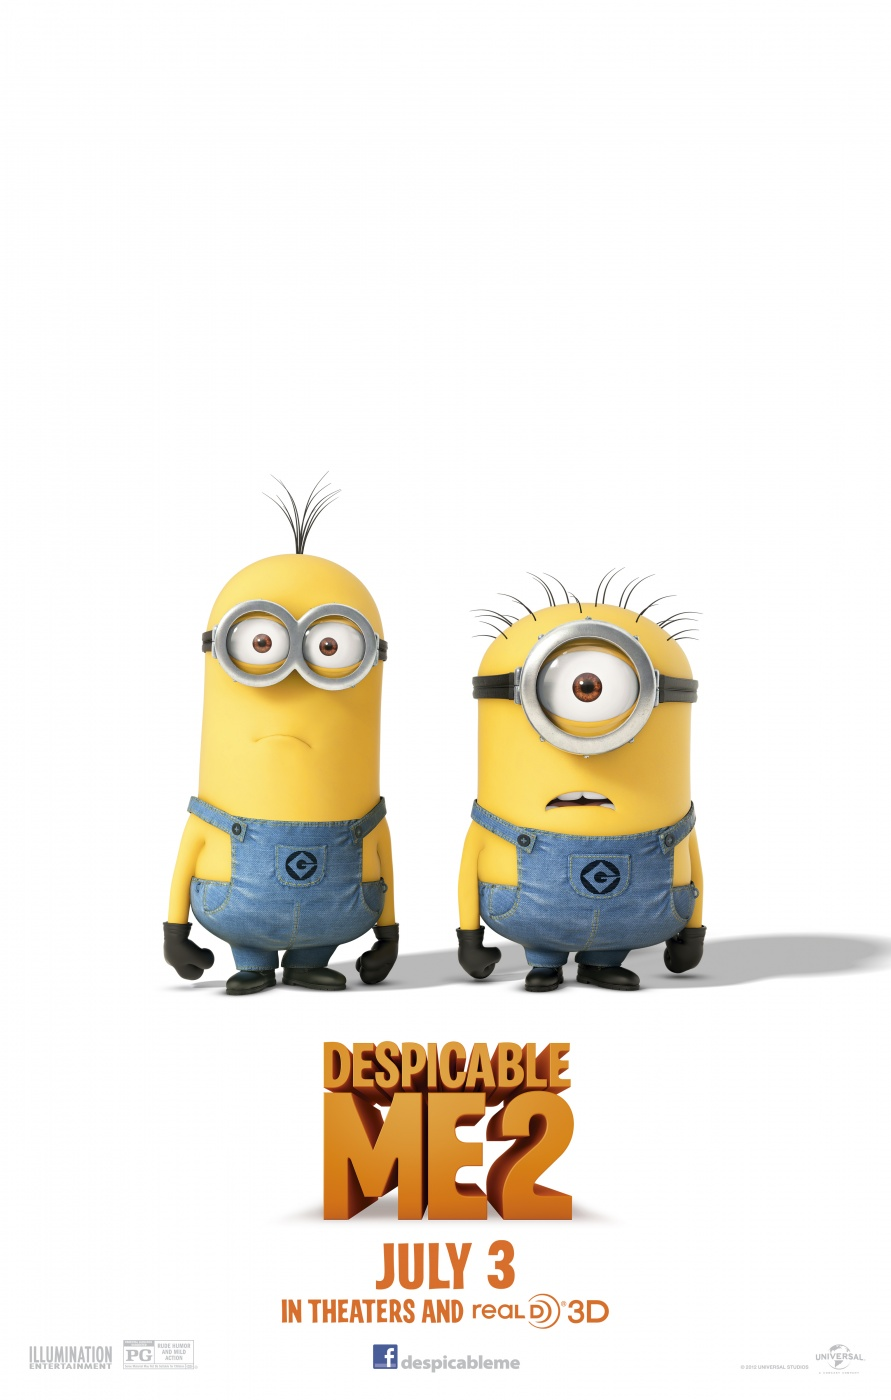 movie review despicable me 2 essay Universal summer's always a great time for families to head to the movies 'despicable me 2' family review: will kids and parents like it tags despicable me 2 despicable me 2 family review despicable me 2 review despicable me 2 showtimes despicable me 2 trailer family film review video.